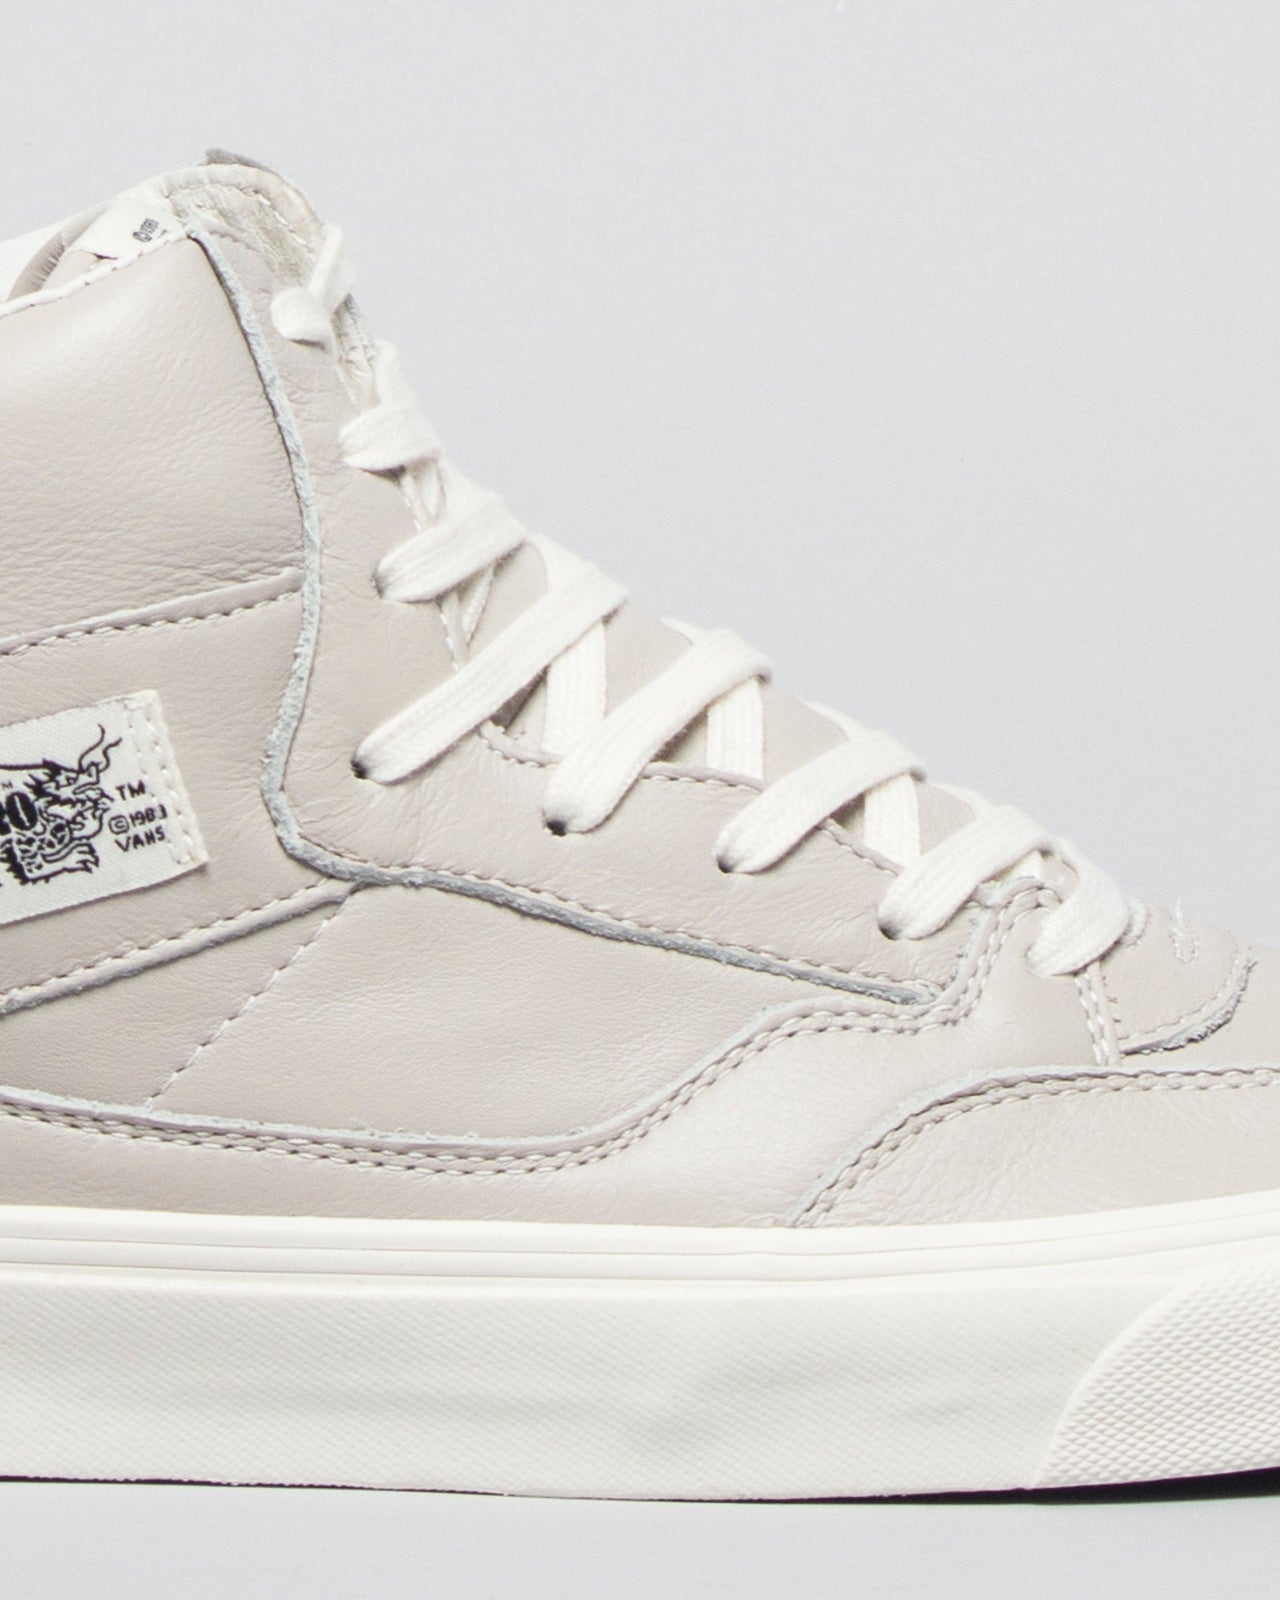 OG Full Cab LX (Leather) Silver Cloud